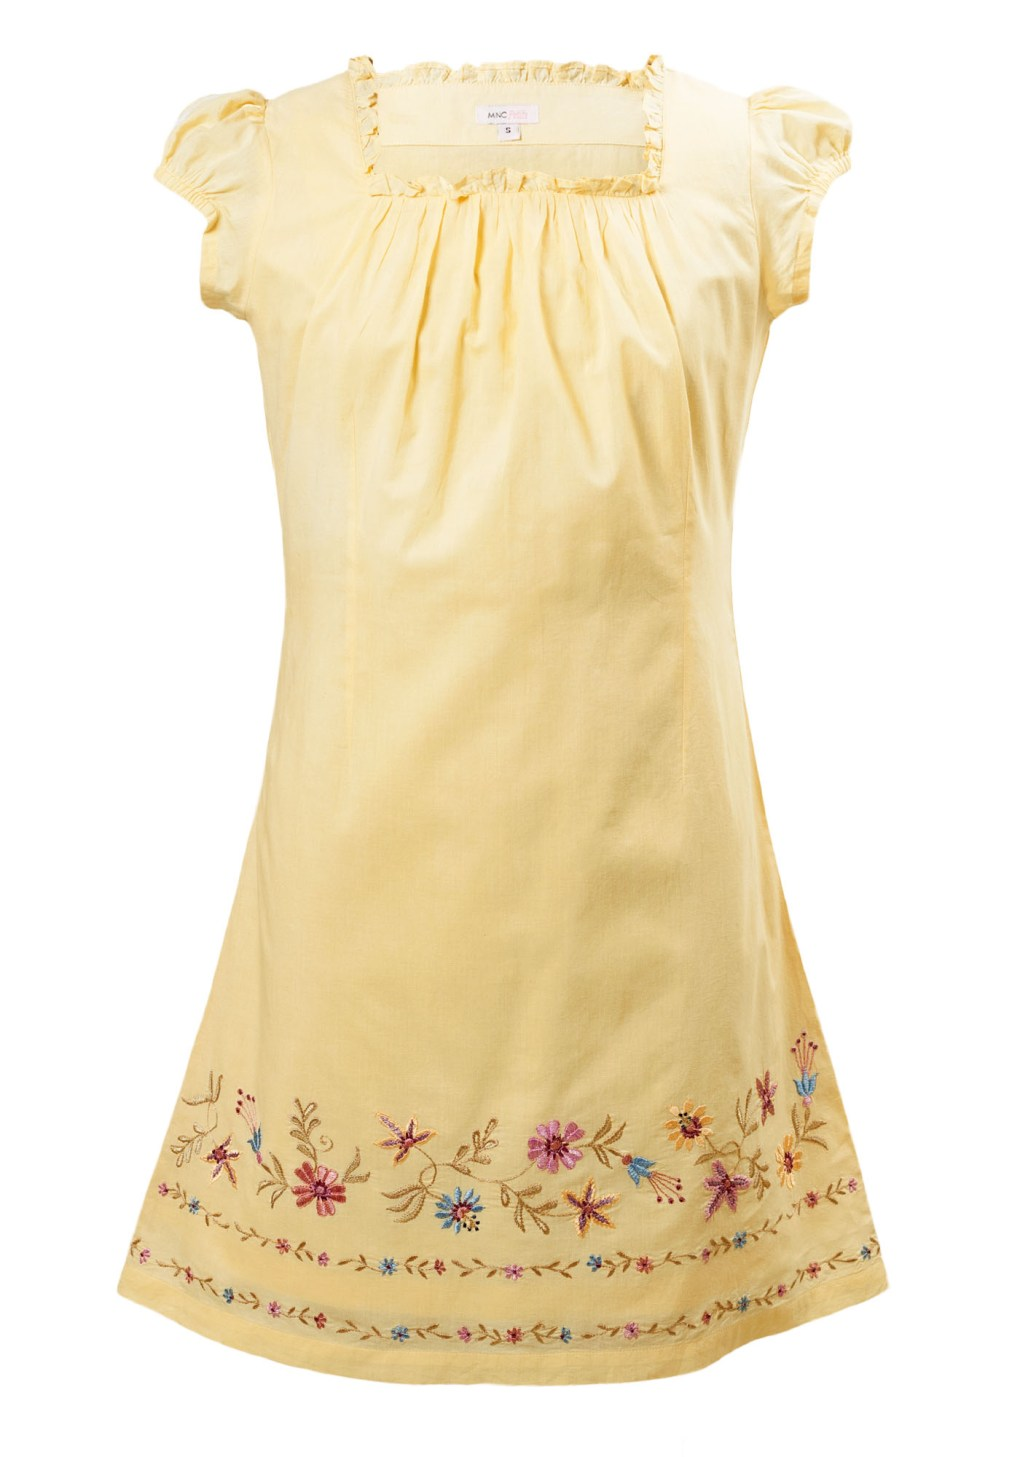 MINC Petite Girls Embroidered Short Dress in Yellow Cotton